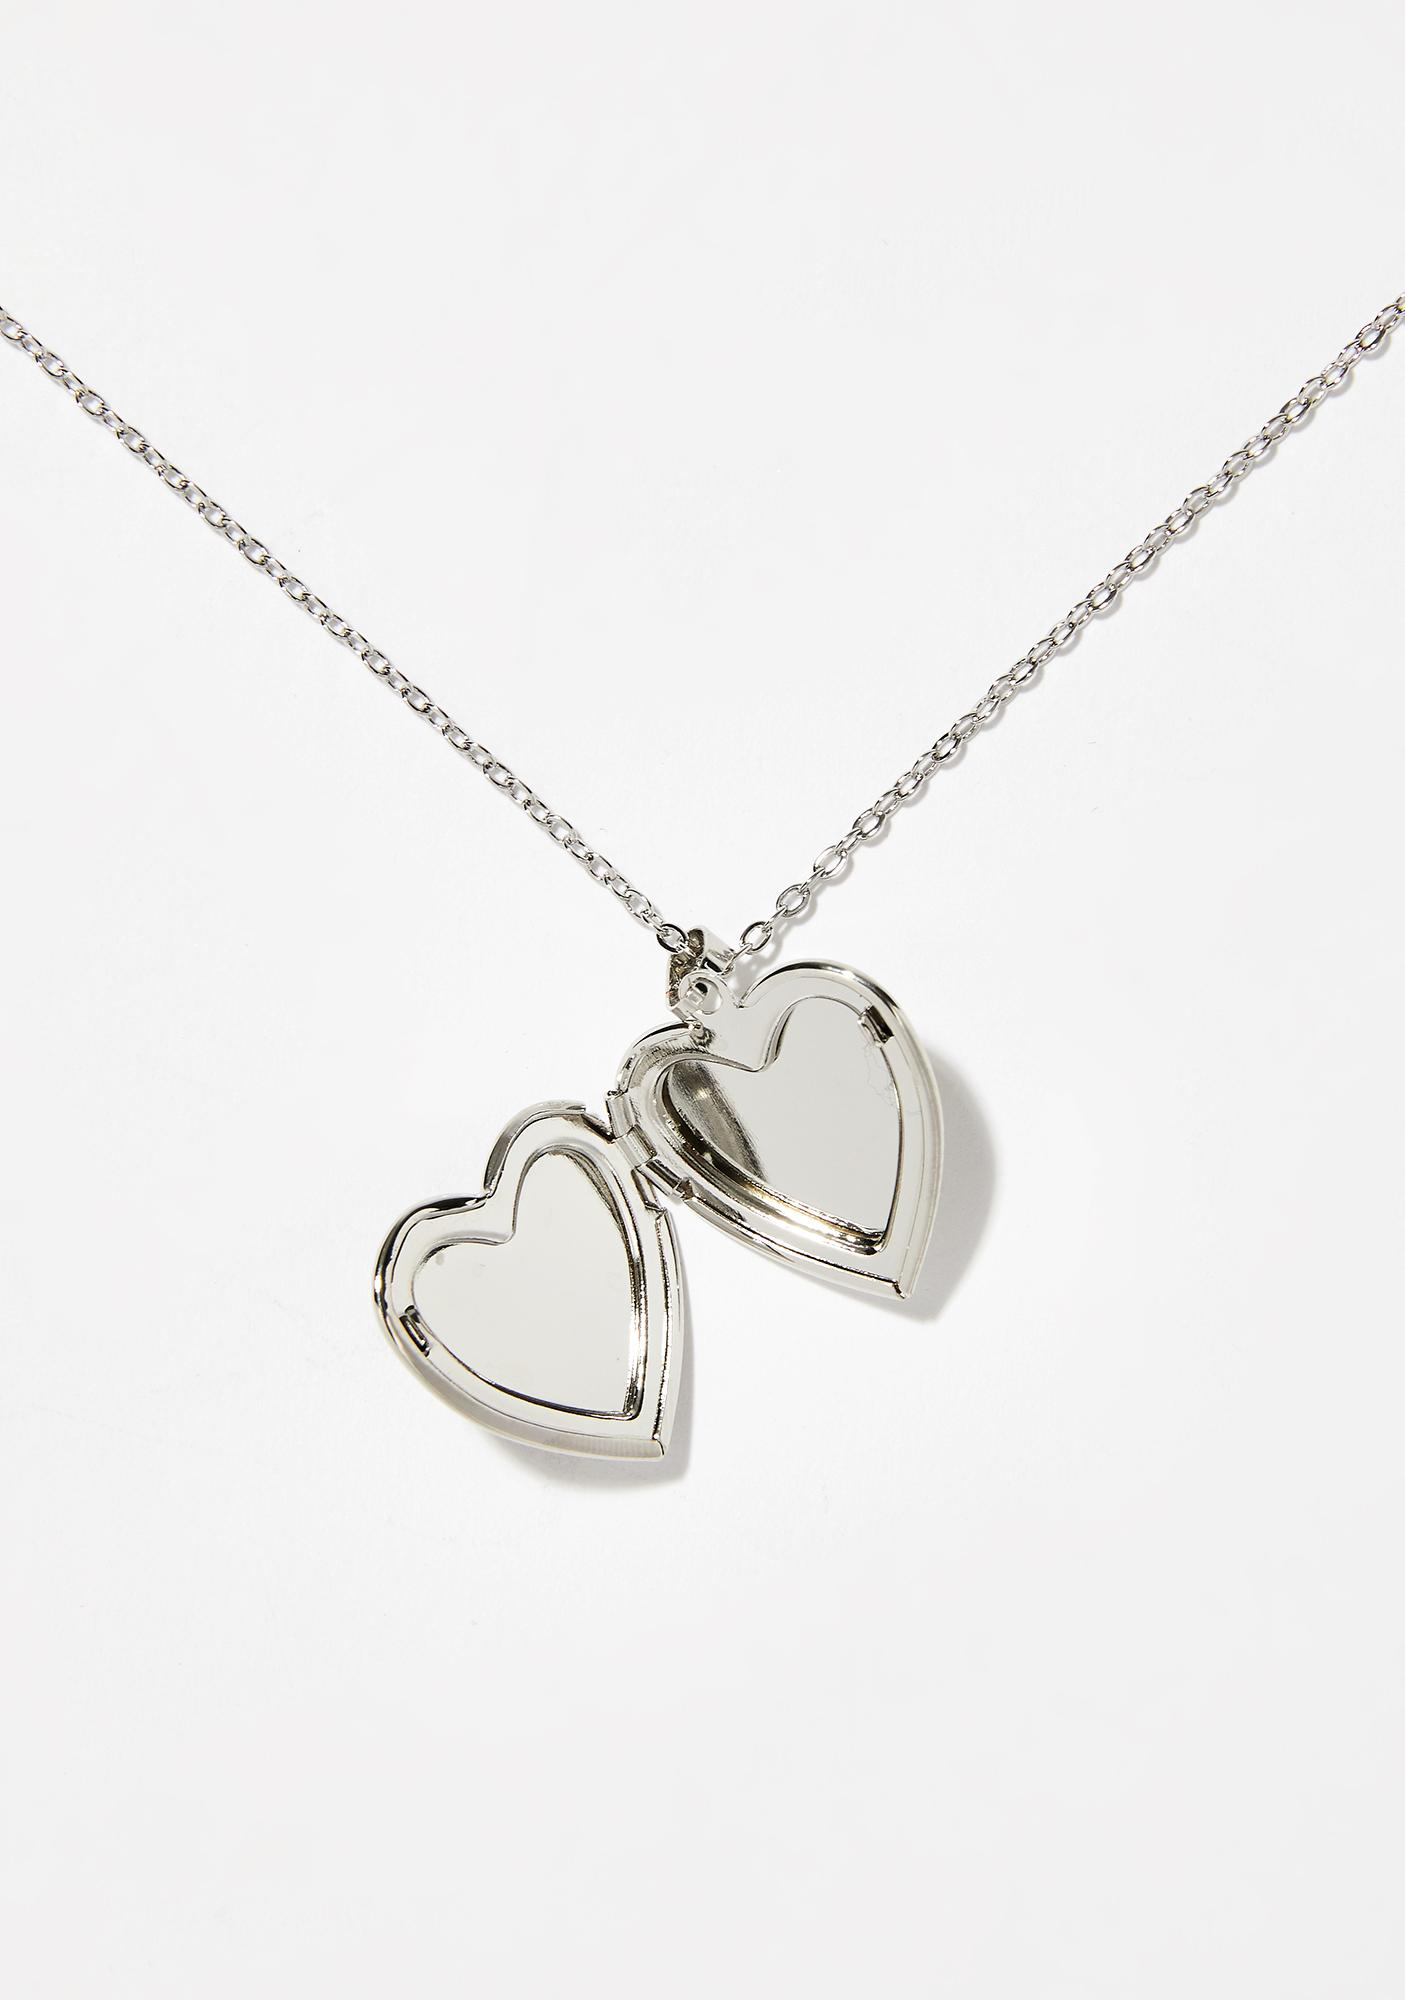 Shifting Moods Heart Necklace